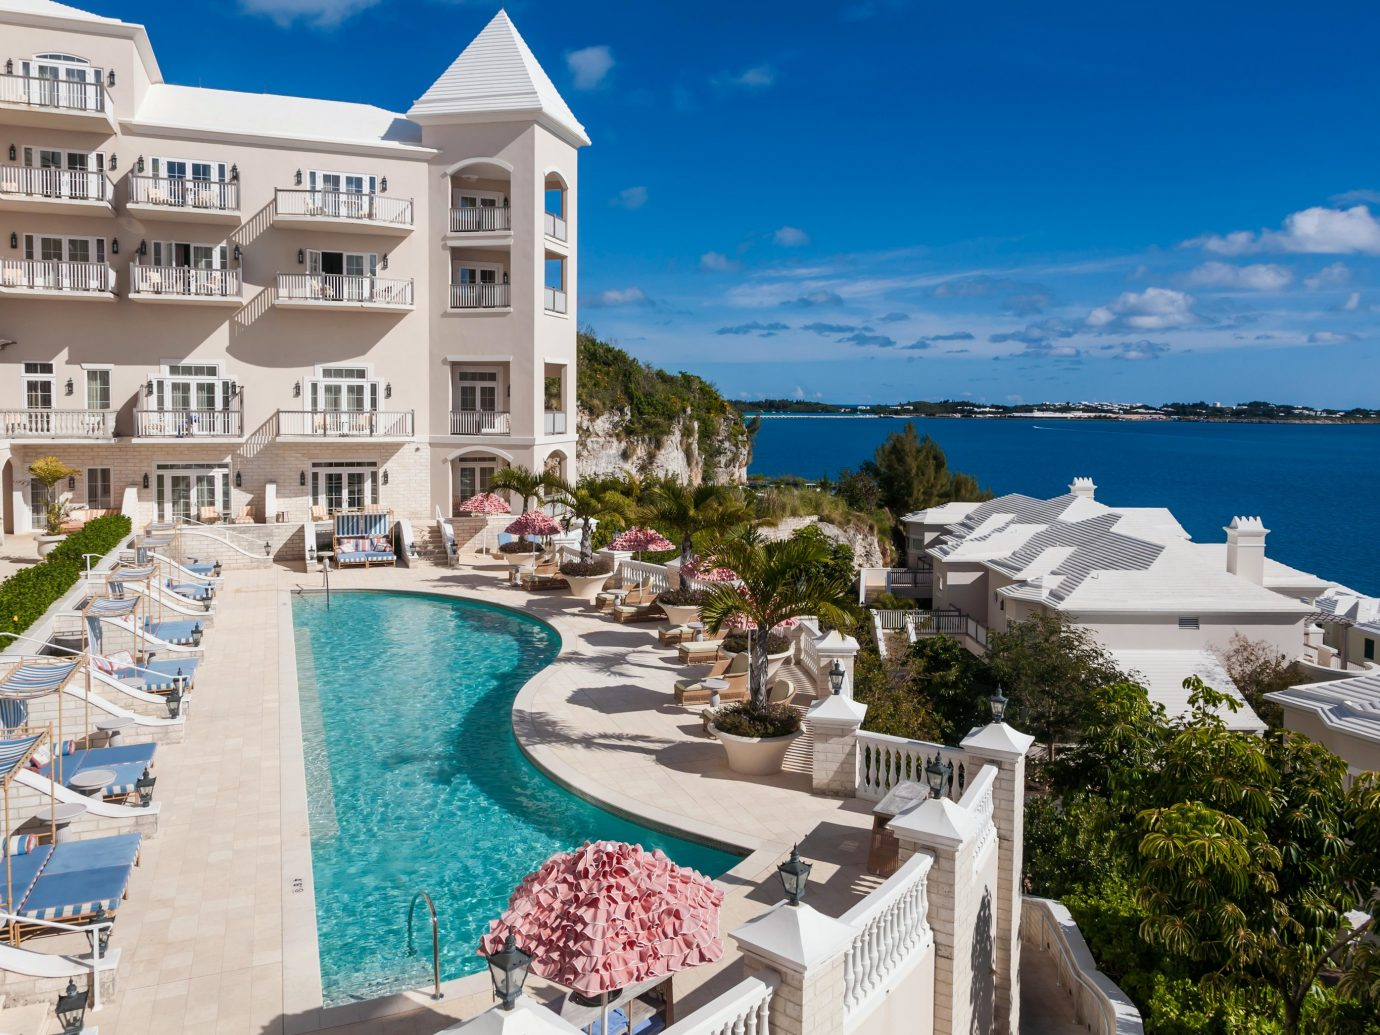 Pool at Rosewood Bermuda